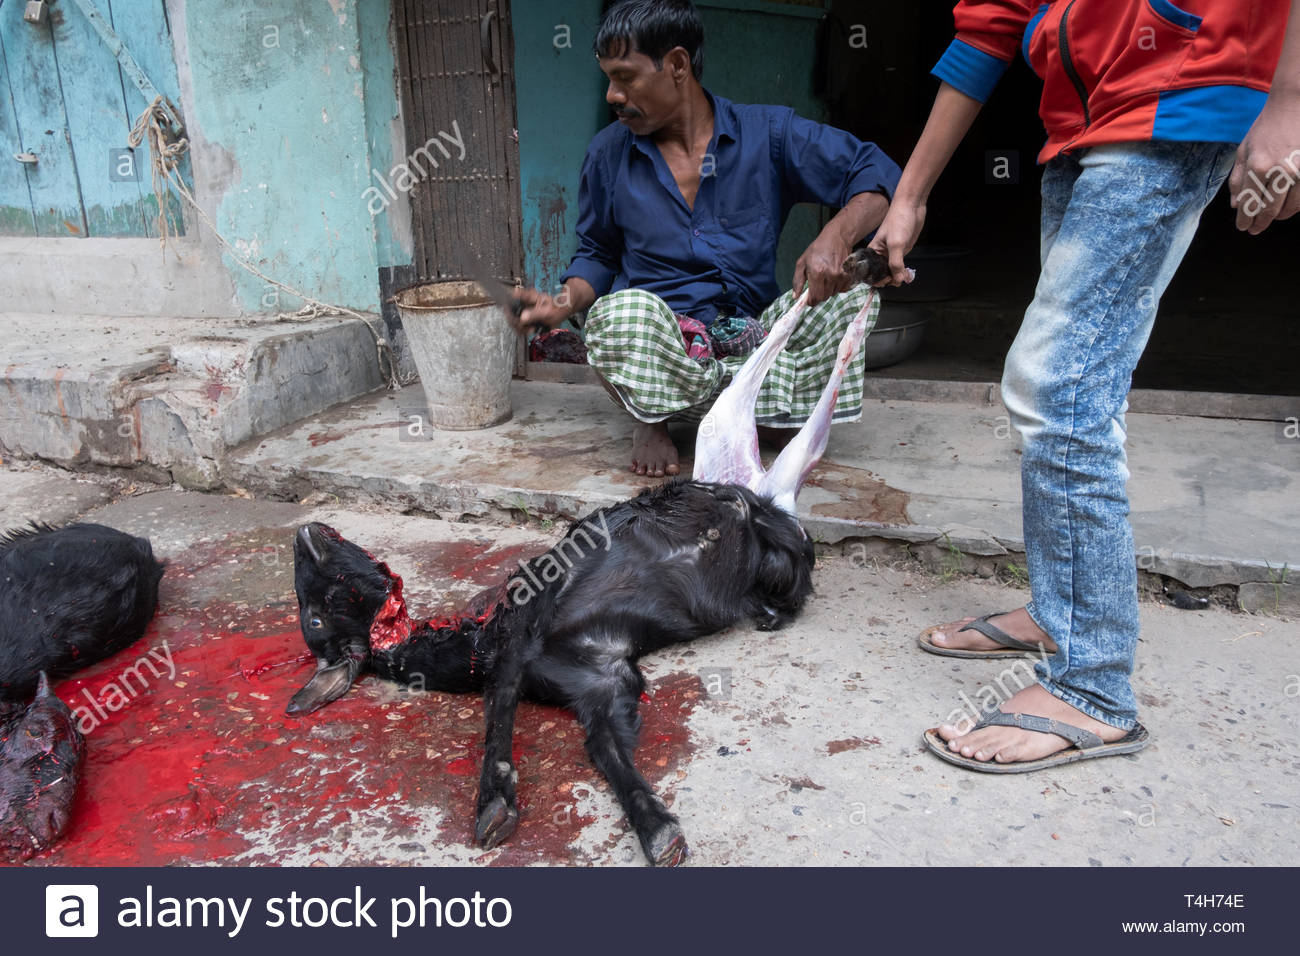 butcher in the slaughterhouse killing and preparing black goat lying on the ground, cut throat, blood around, scary, disgusting scene Stock Photo